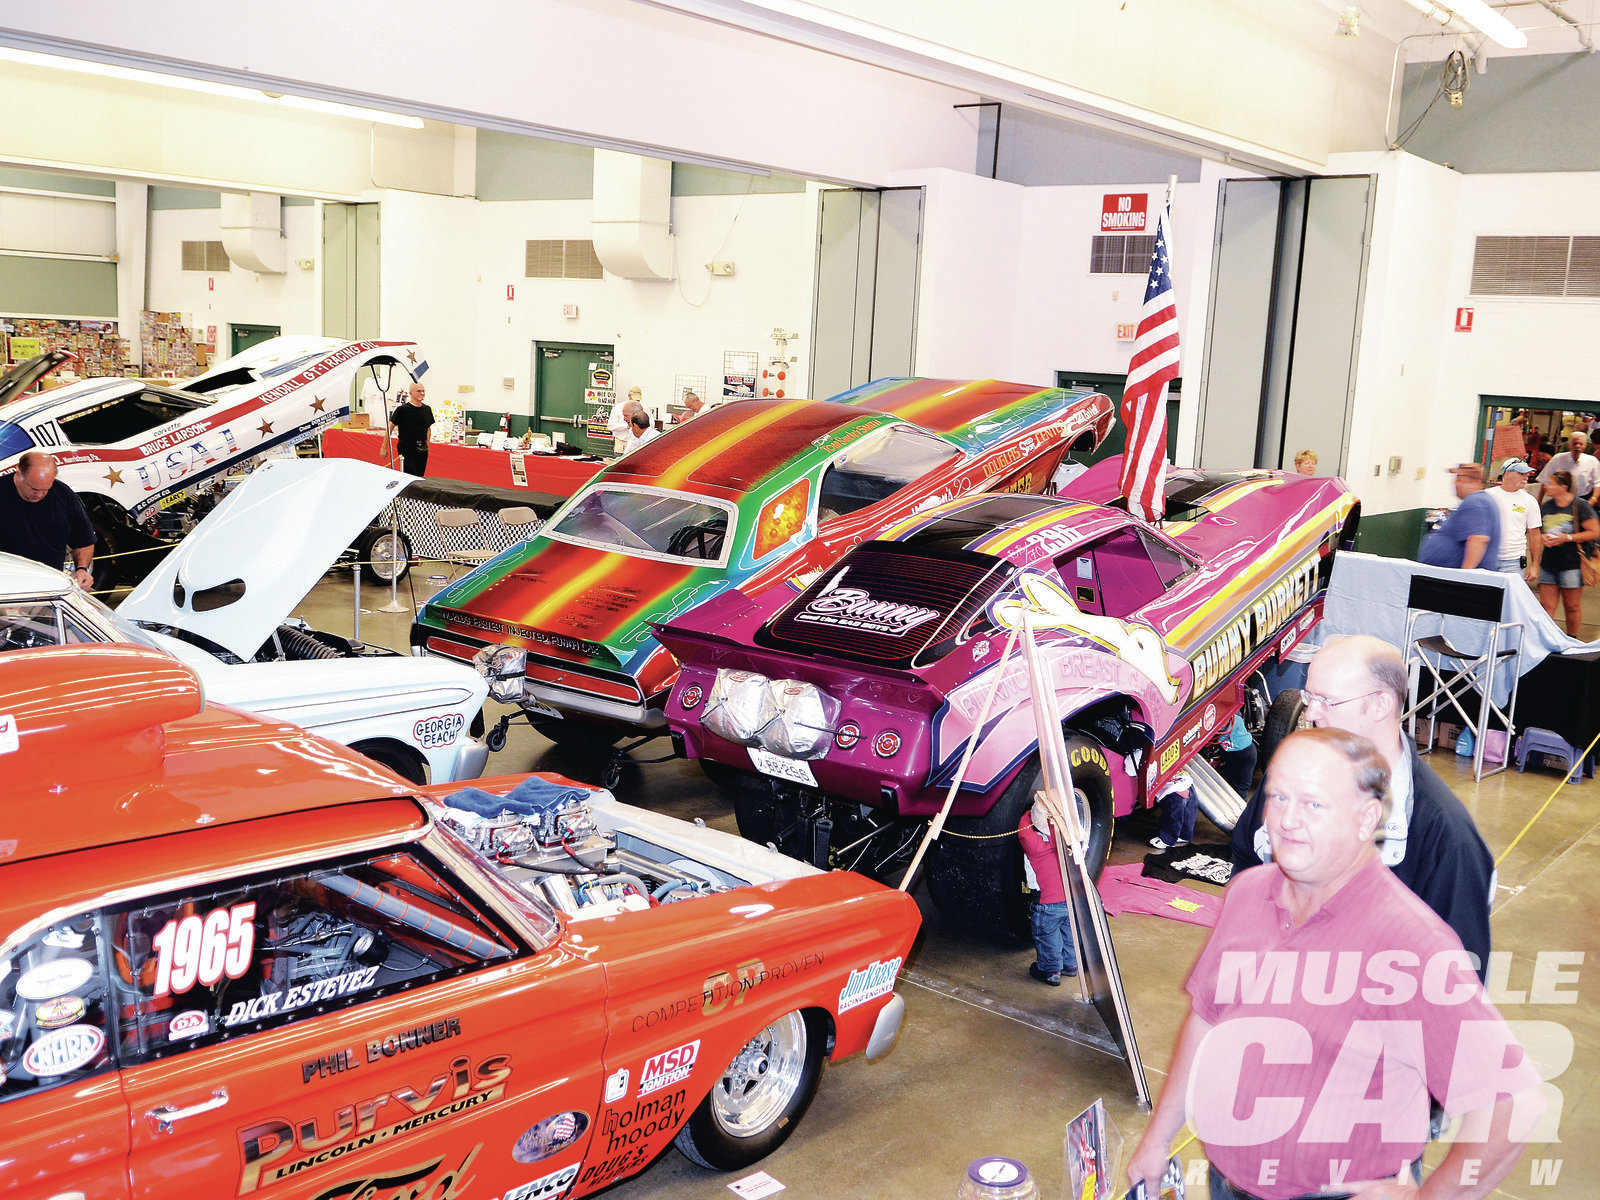 Funny cars, door cars, and various performance machines filled up two whole buildings on the York Fairgrounds.